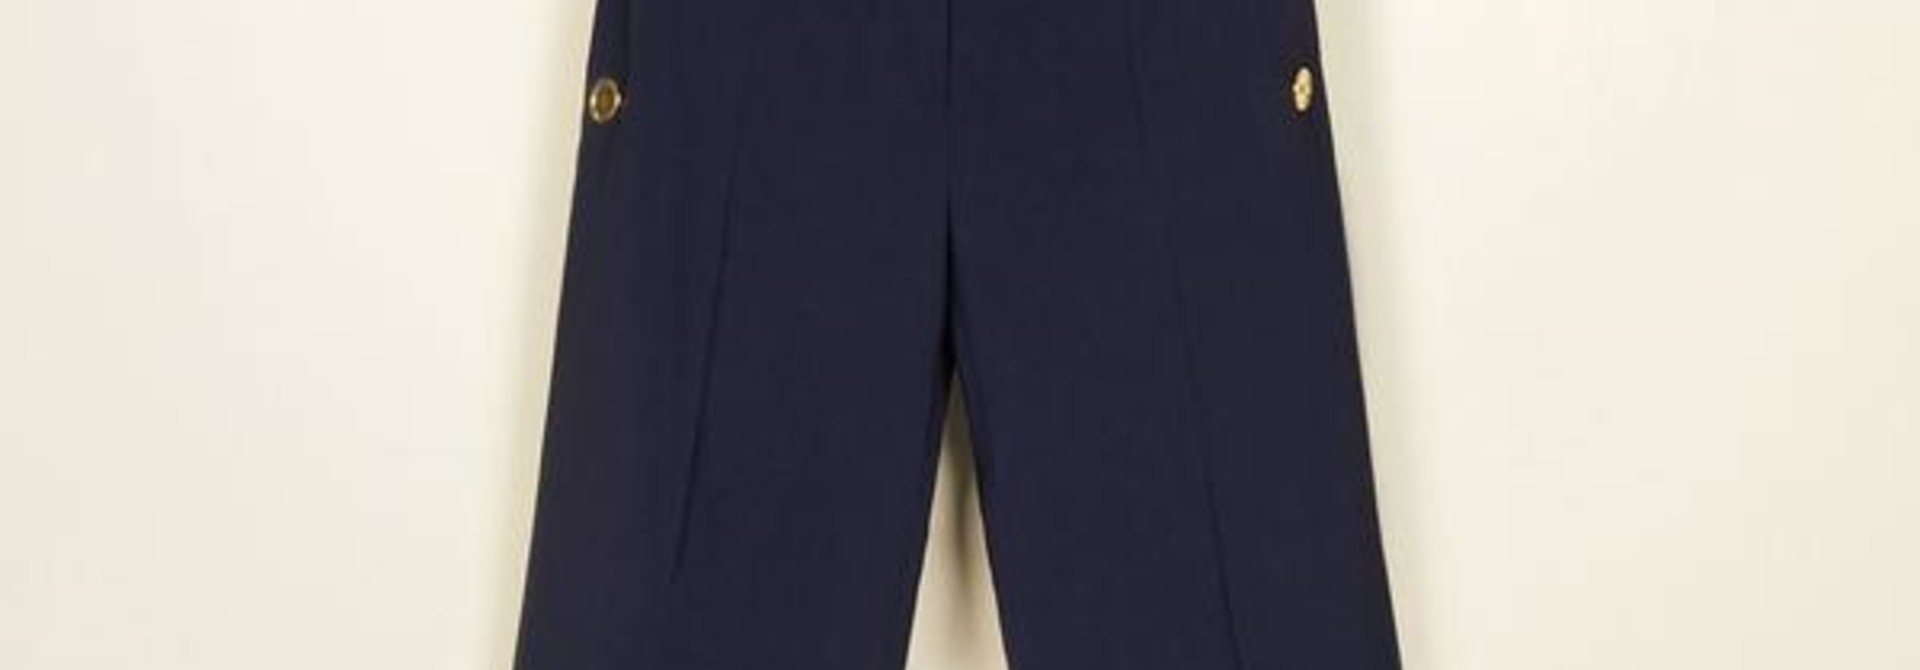 Summer Wool Sailor Trousers - Navy - Sz. 38